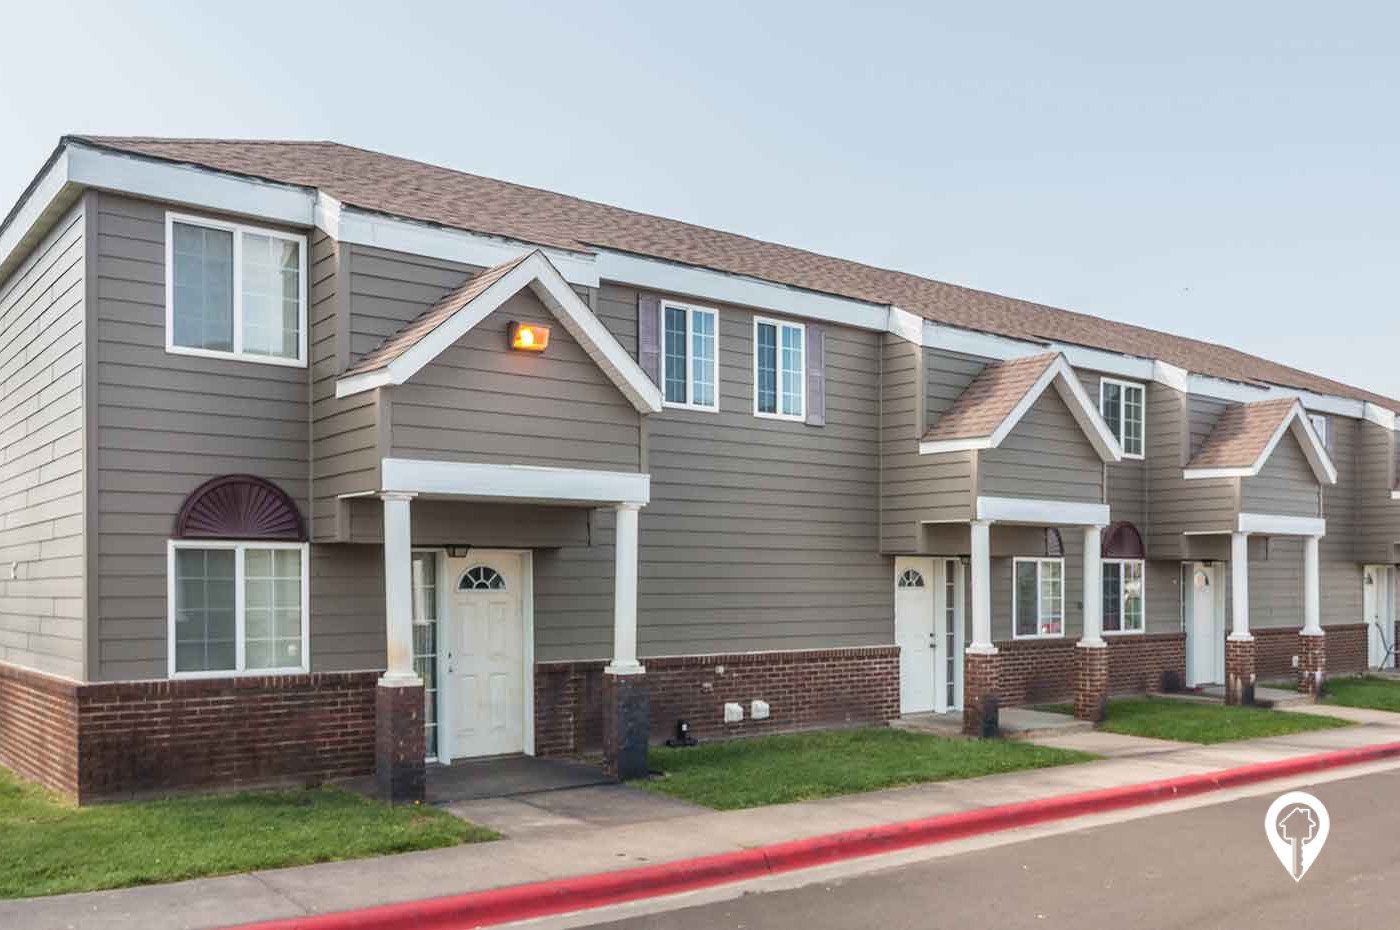 Arbordale Apartments & Townhomes